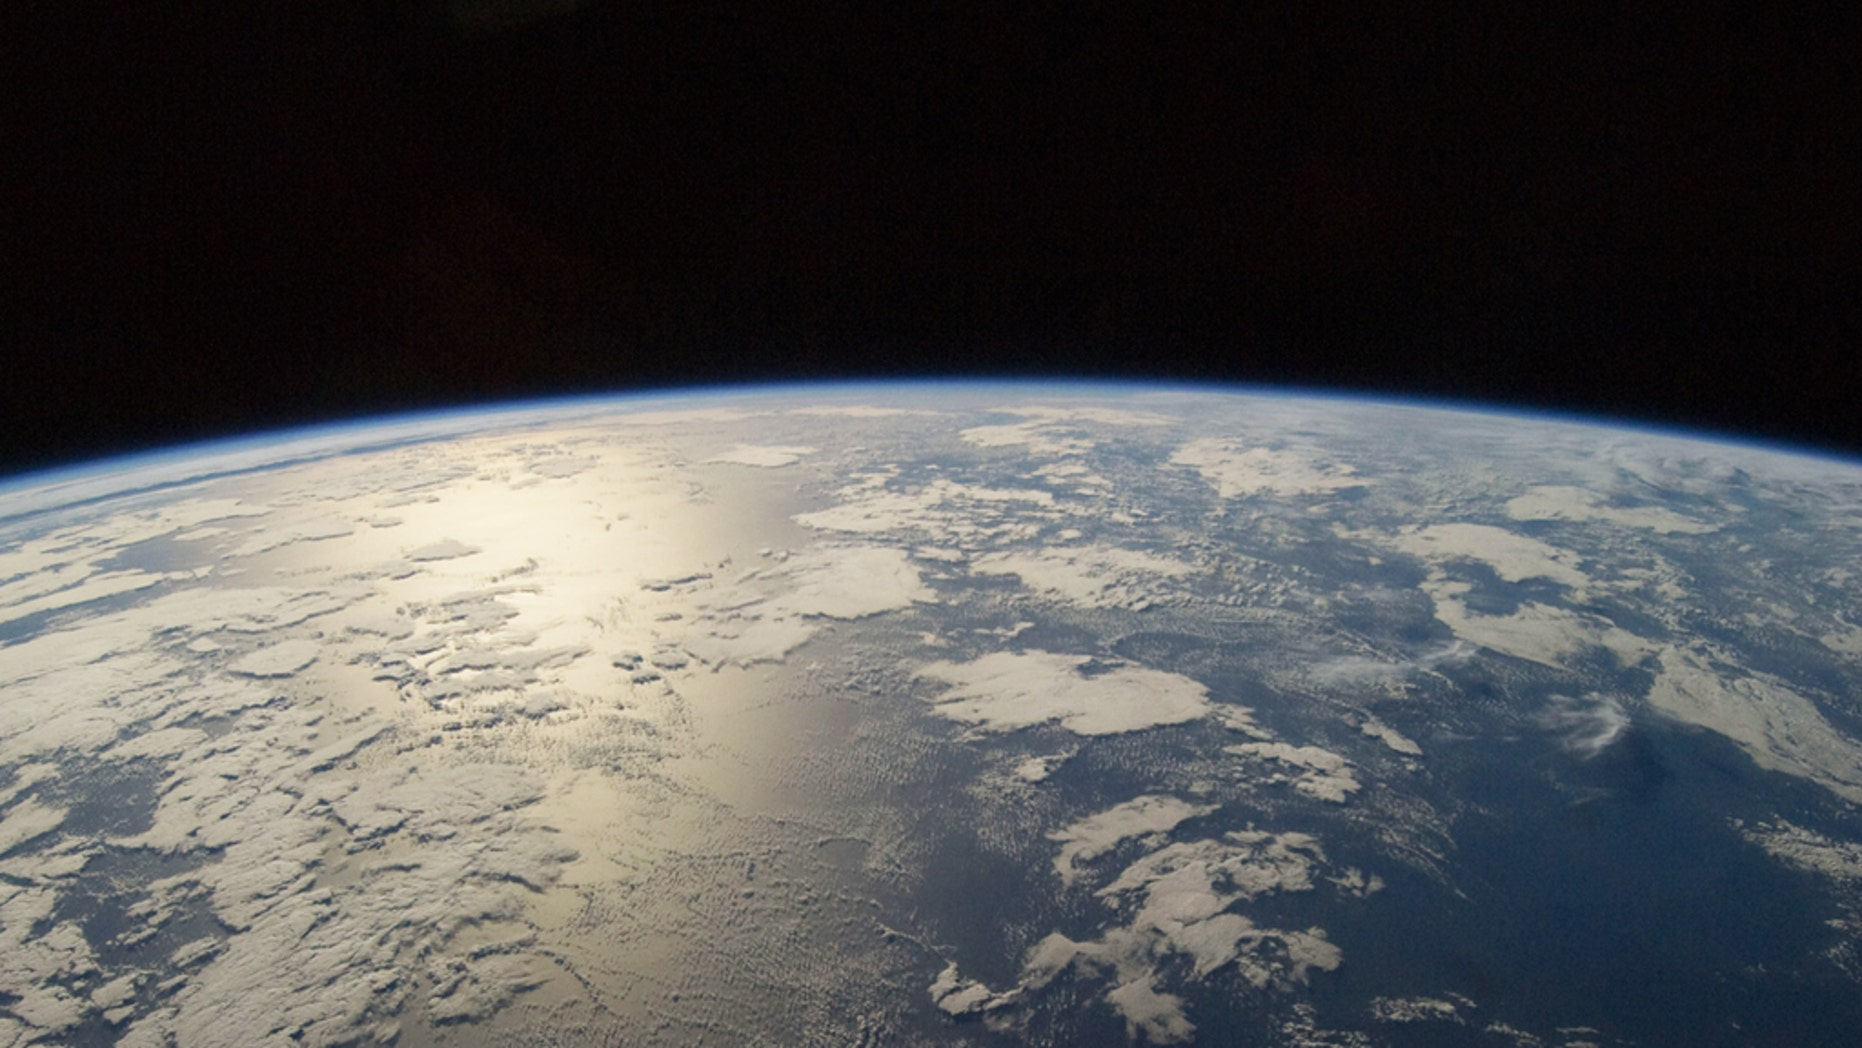 Astronauts' views of Earth from onboard the International Space Station are famously beautiful.